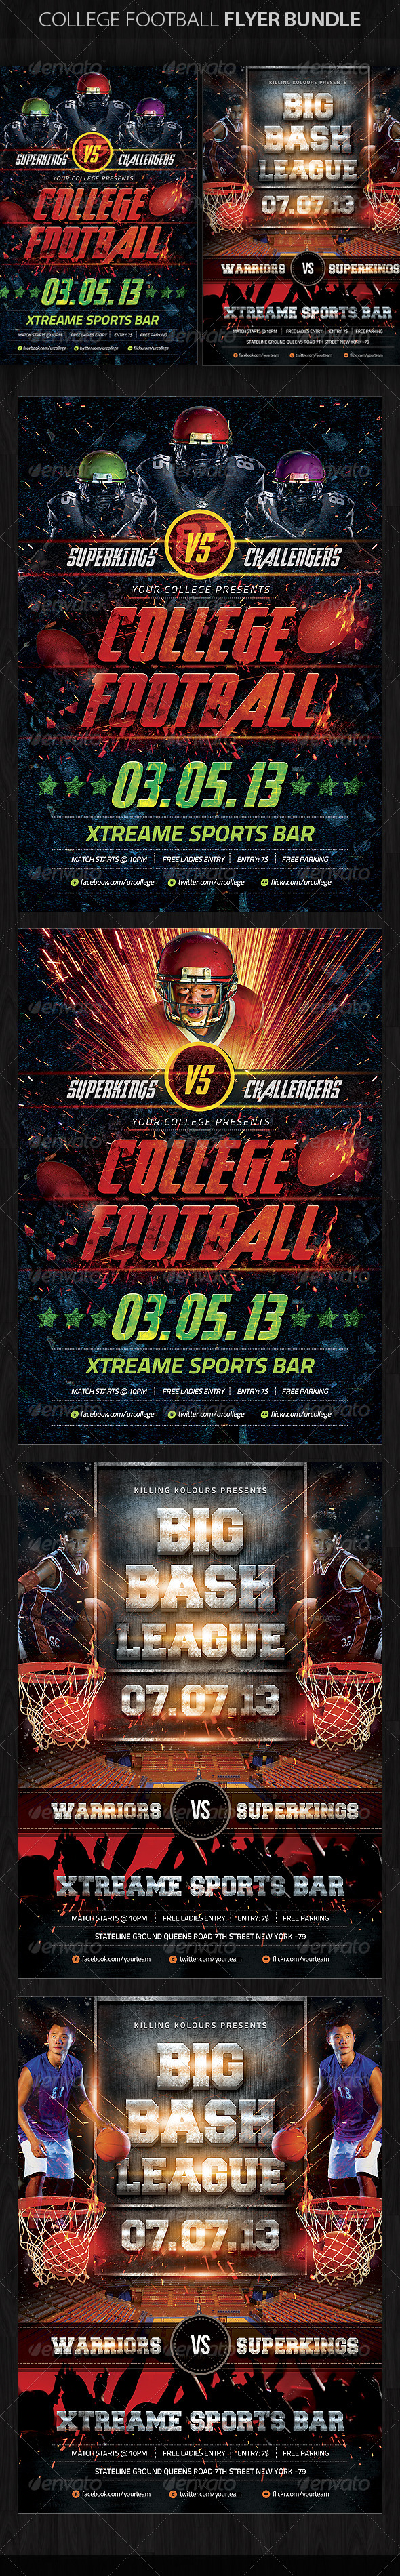 College Football Flyer Bundle - Sports Events